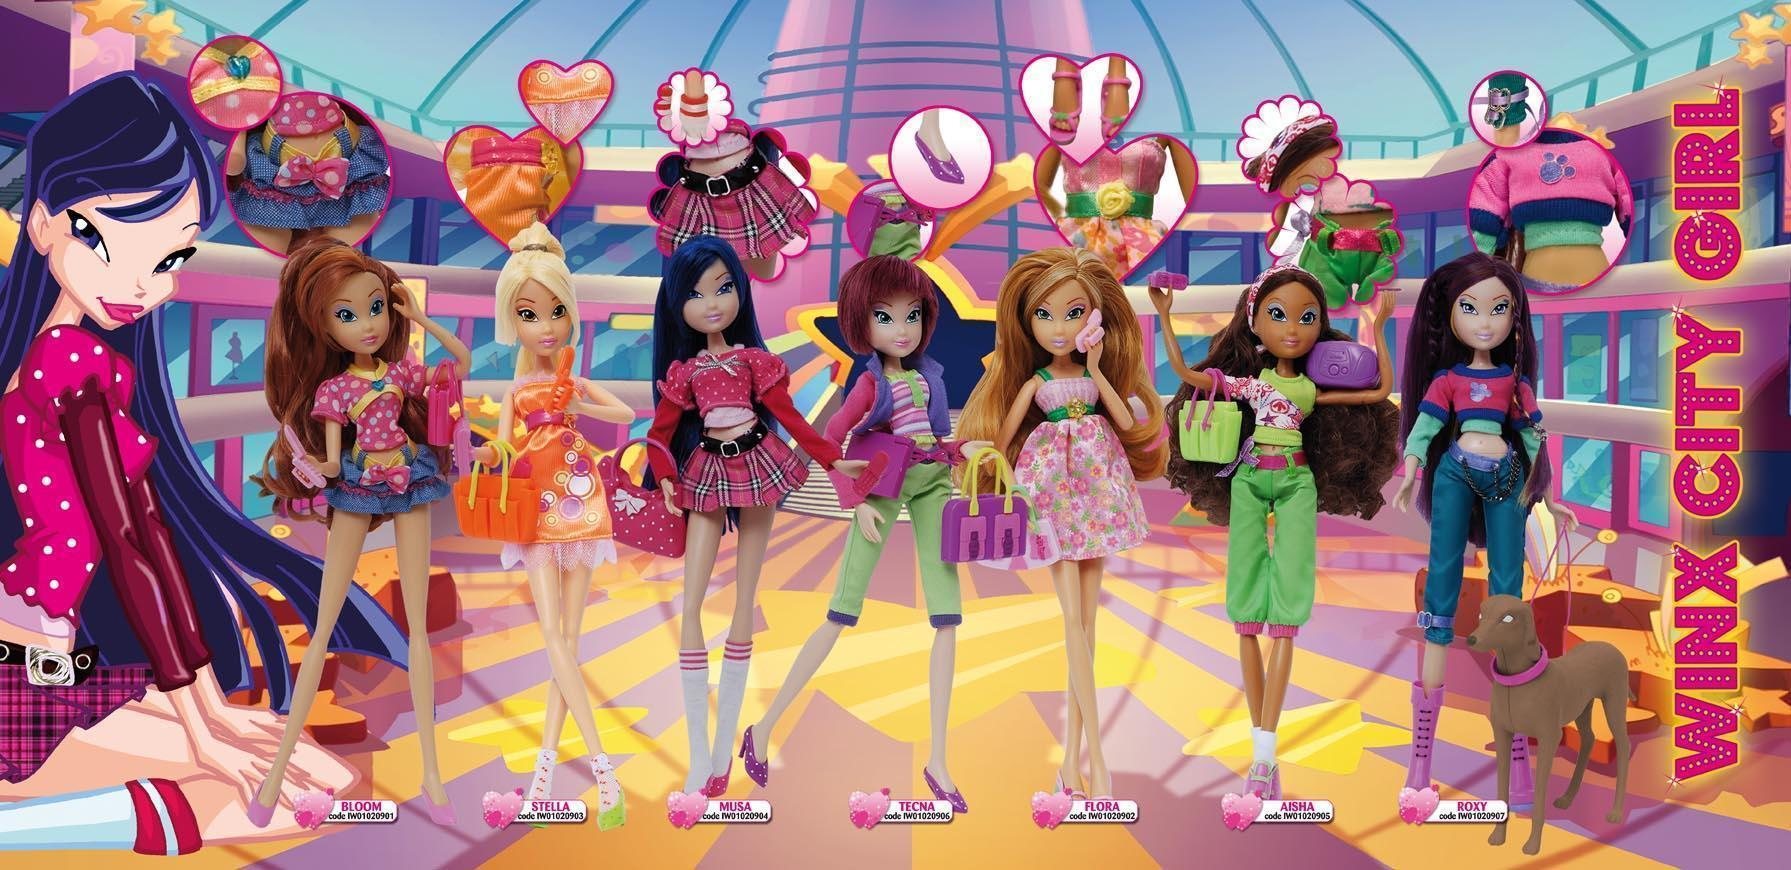 Uncategorized Winx Dolls winx dolls images hd wallpaper and background photos 18451246 photos